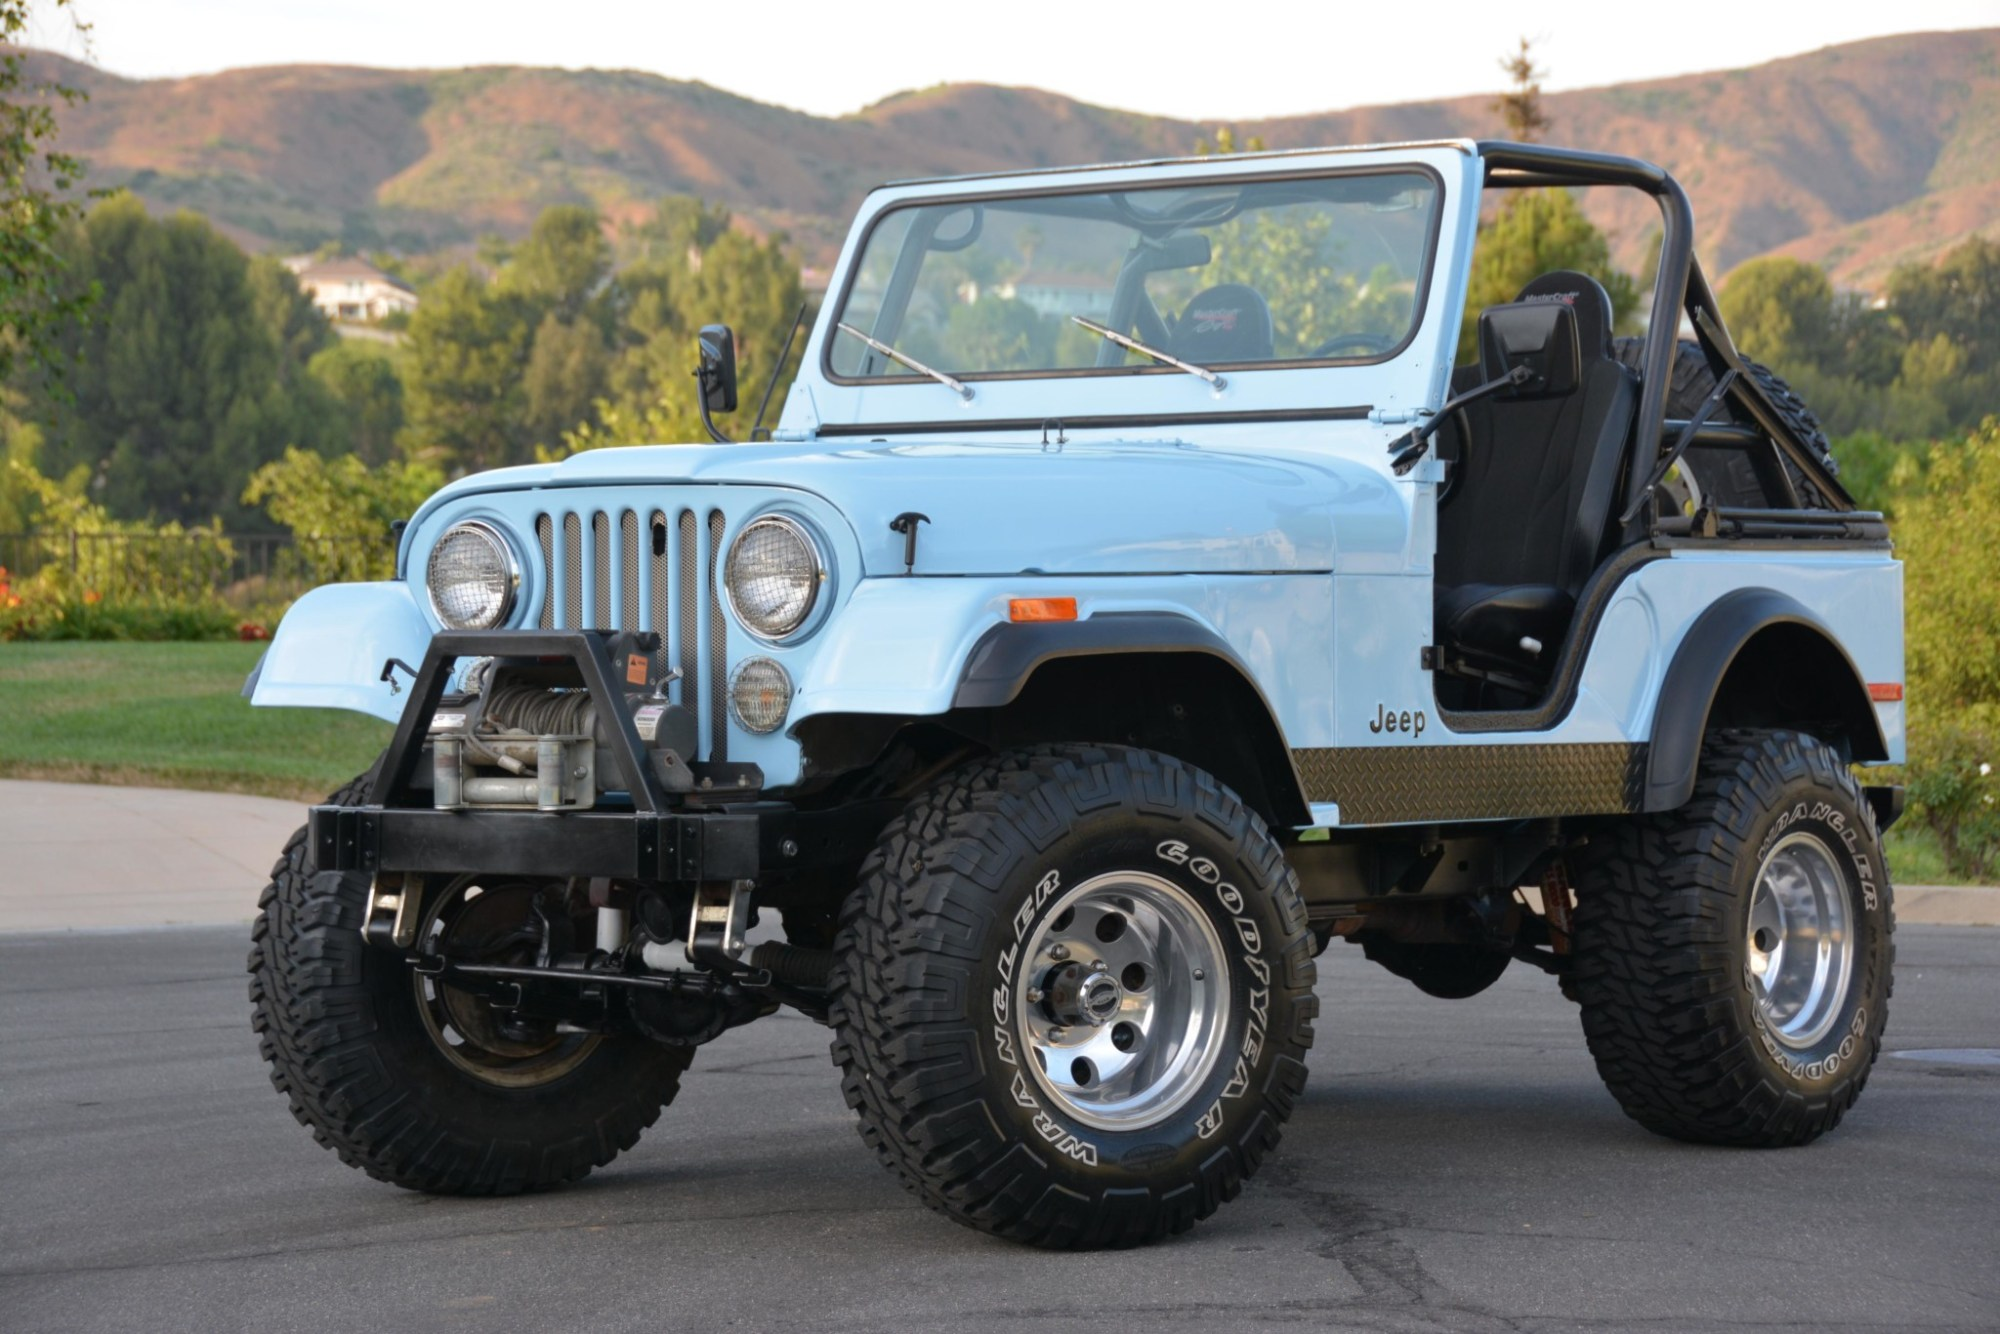 hight resolution of 1980 jeep cj 5 for sale on bat auctions sold for 9 700 on july 3 2019 lot 20 544 bring a trailer